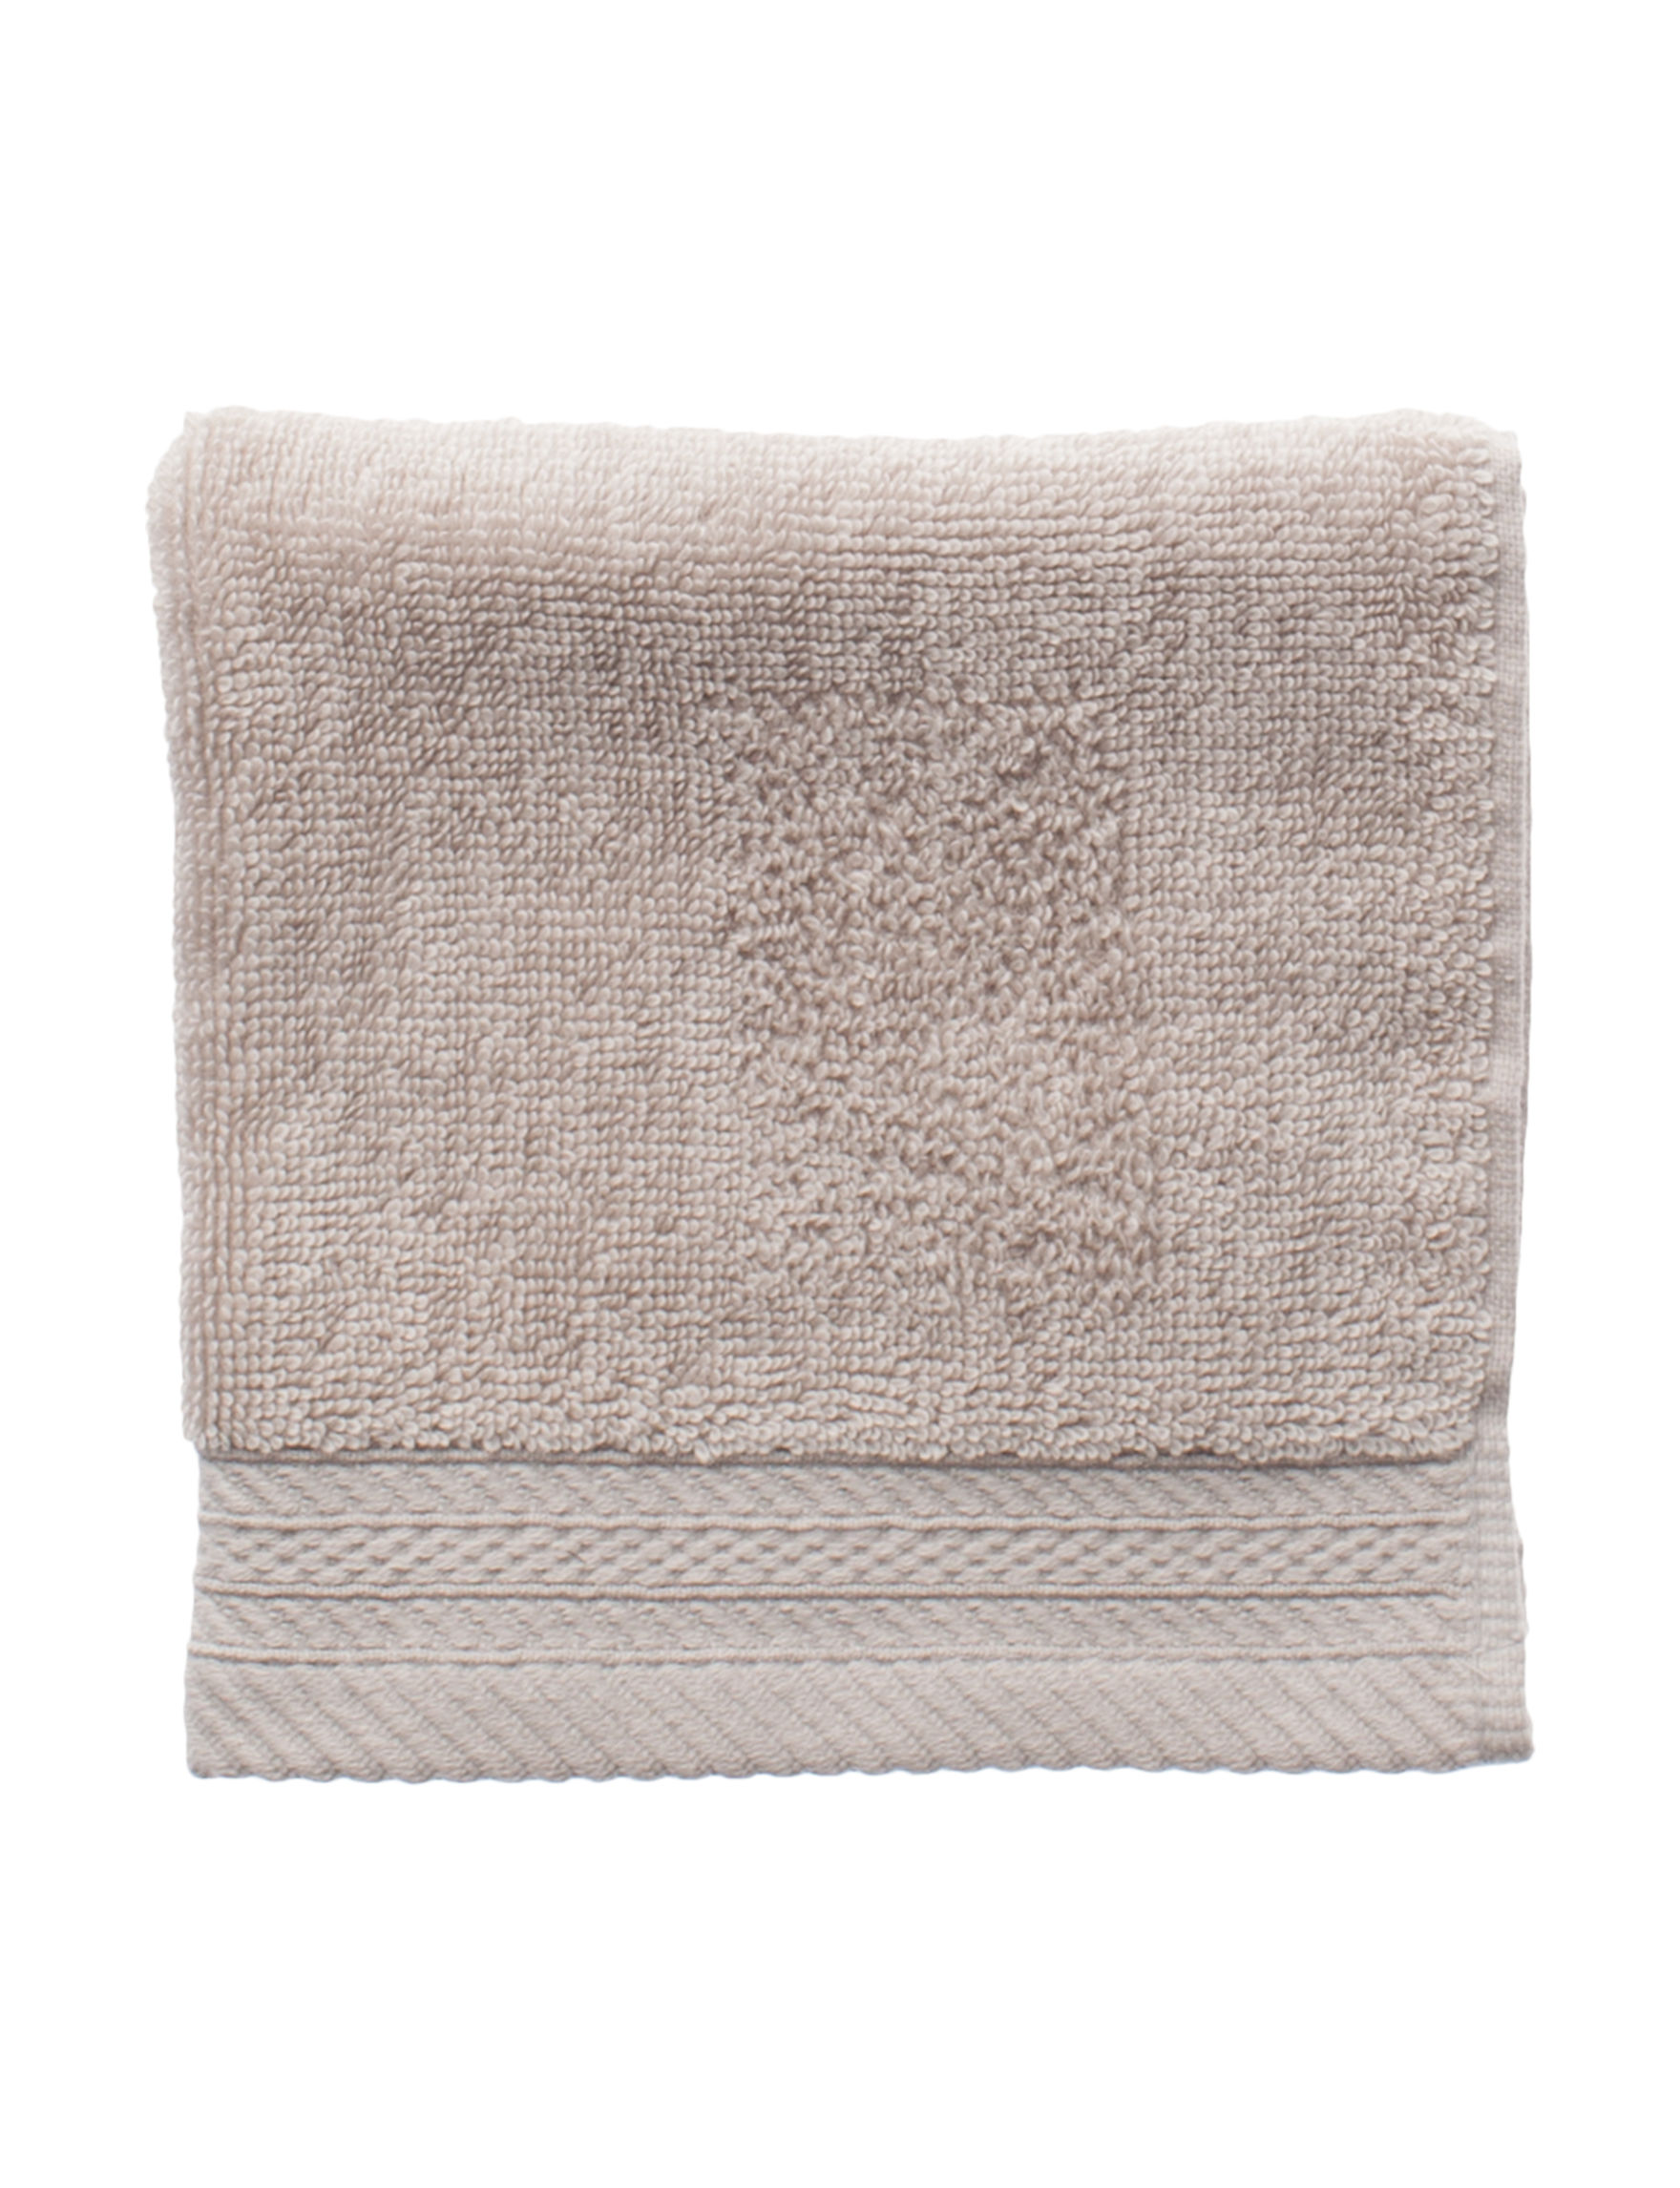 Great Hotels Collection Grey Washcloths Towels